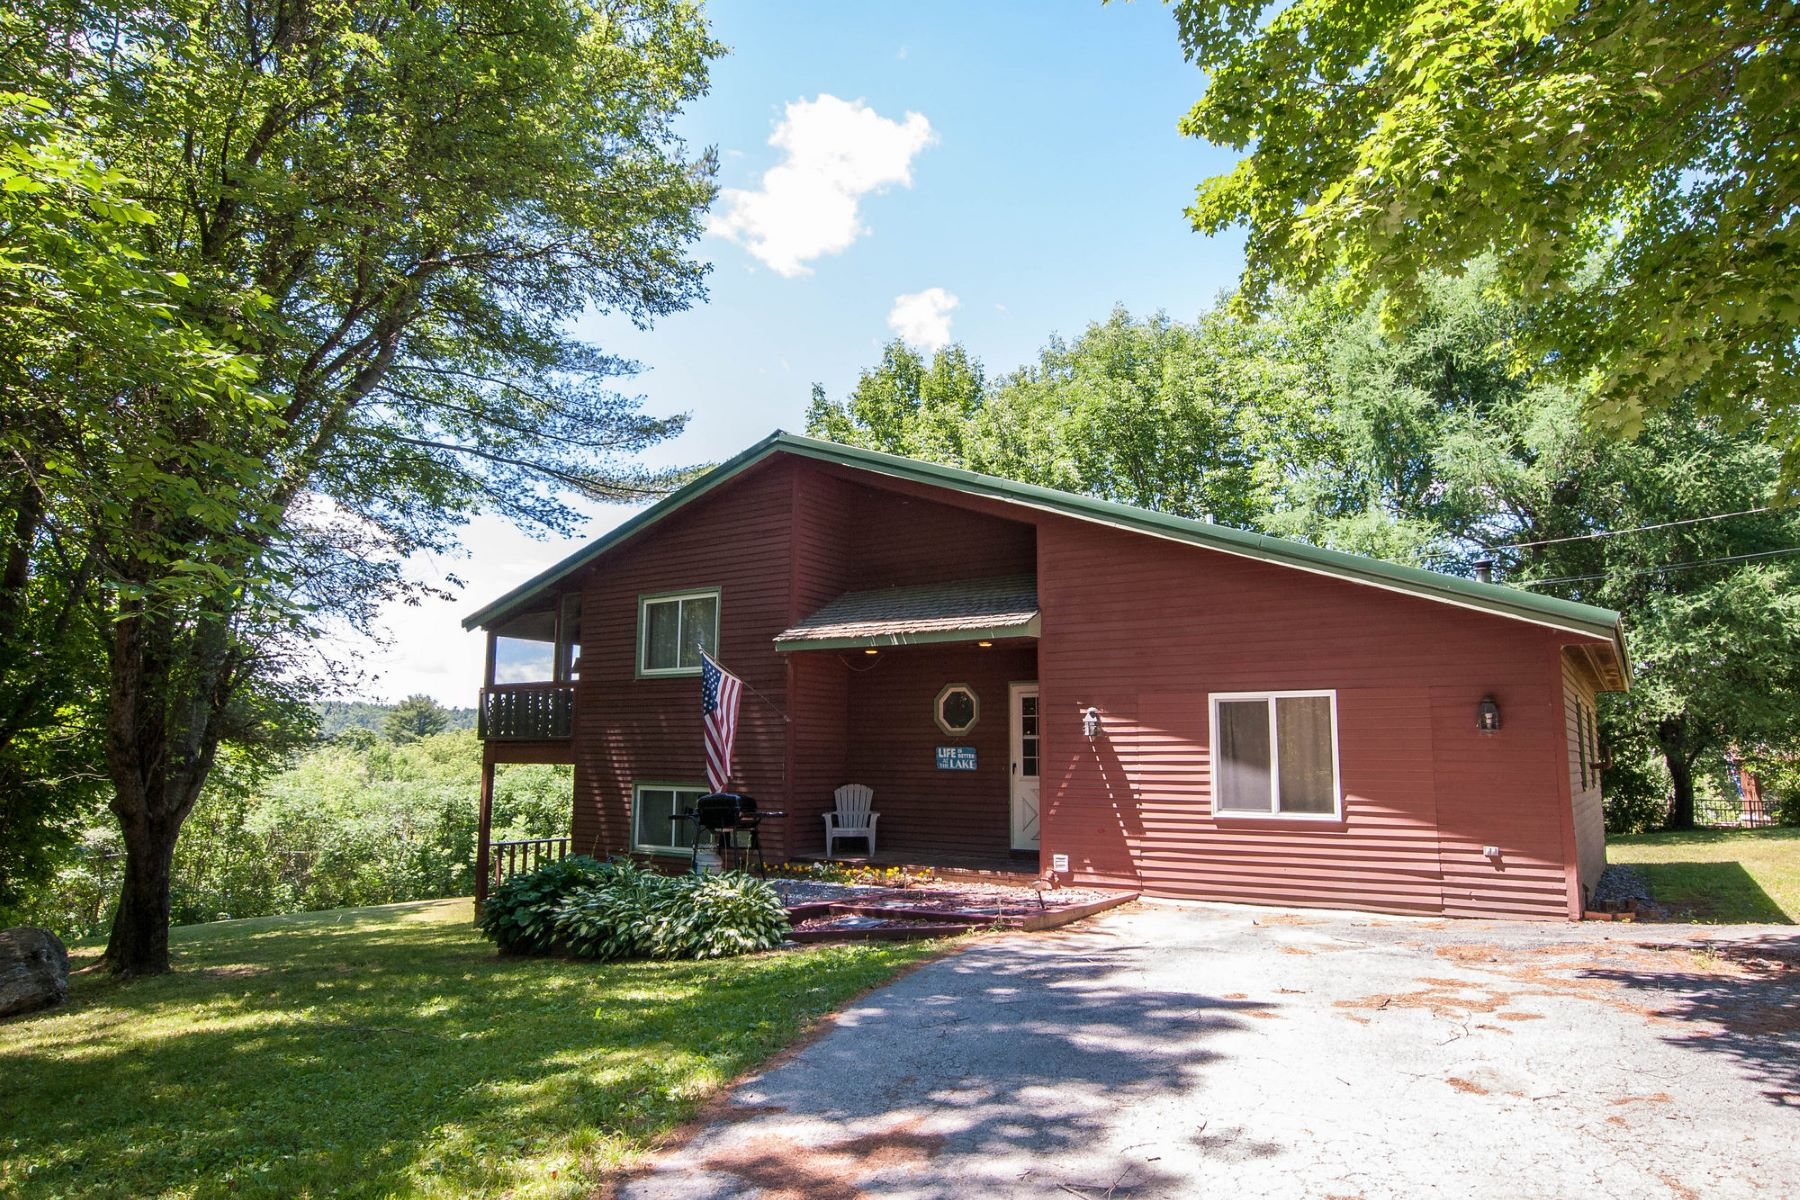 Single Family Home for Sale at Contemporary Lake House with Dock 135 Crystal Heights Rd Castleton, Vermont 05732 United States